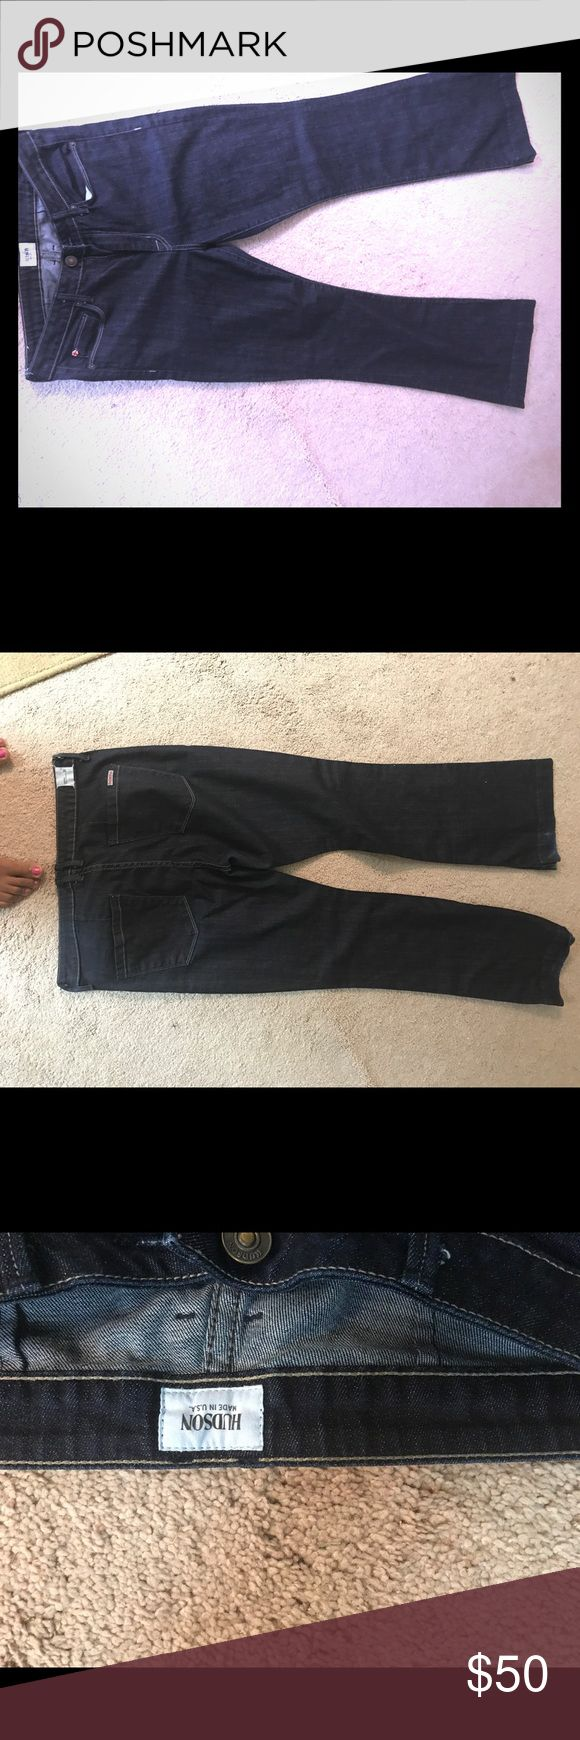 Hudson Jean trousers I've only worn these trousers twice, they fit wonderfully but are too short. In like new condition! Inseam is 33. Hudson Jeans Jeans Flare & Wide Leg